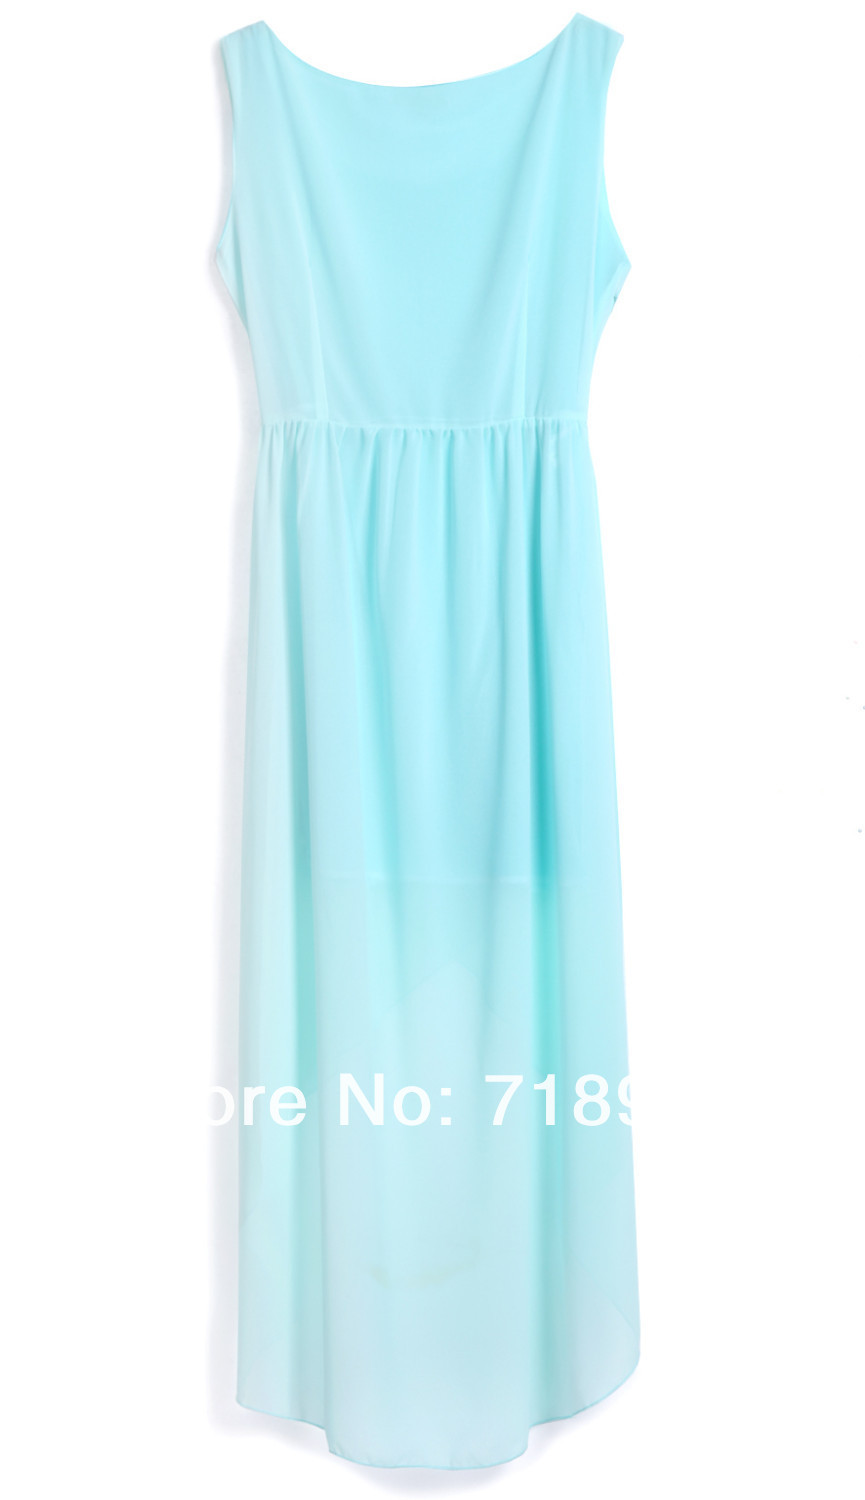 Women chiffon dress, asymetrical dresses,2013 fasion mint green high low Dress, sexy ruffles dress-in Dresses from Apparel & Accessories on Aliexpress.com